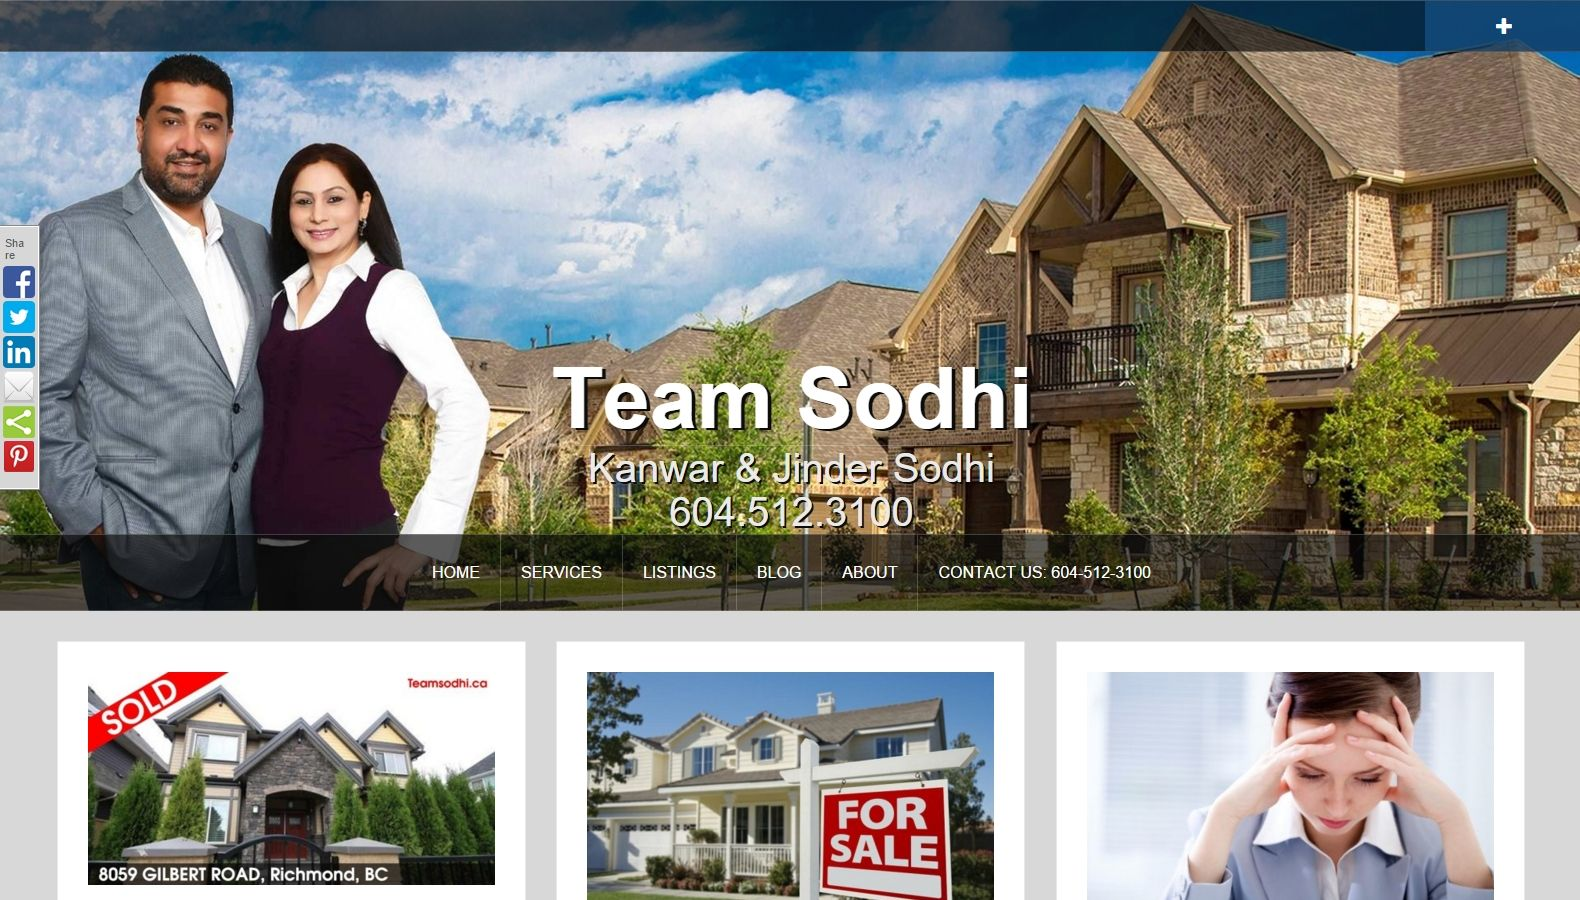 Realtor Team Sodhi – Jinder And Kanwar Sodhi – Website Designing By SEOTeam.ca